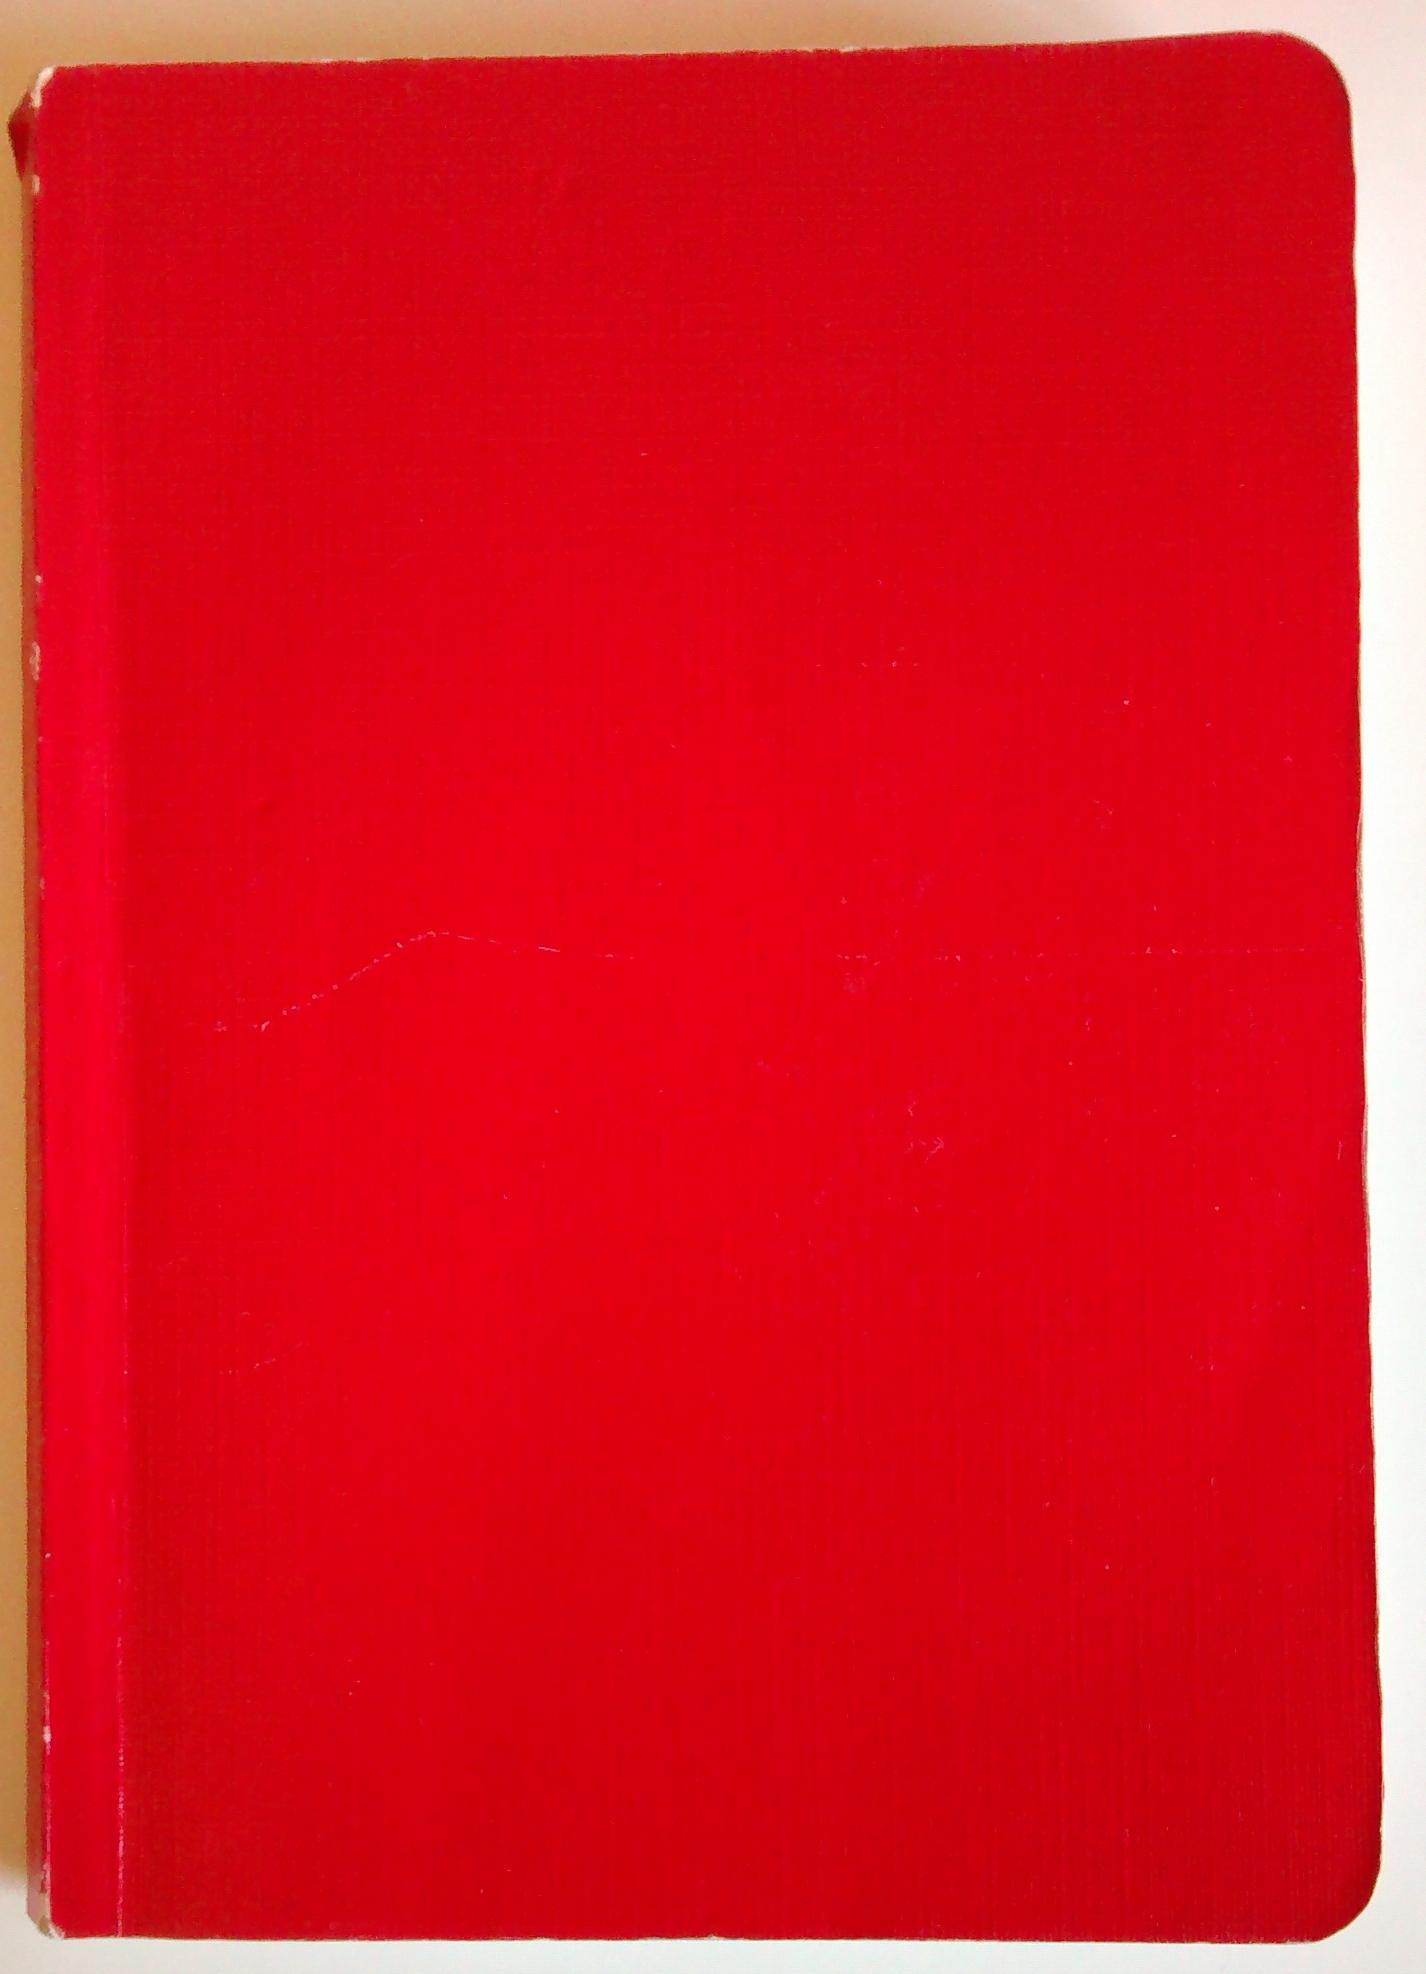 red workbook, cover